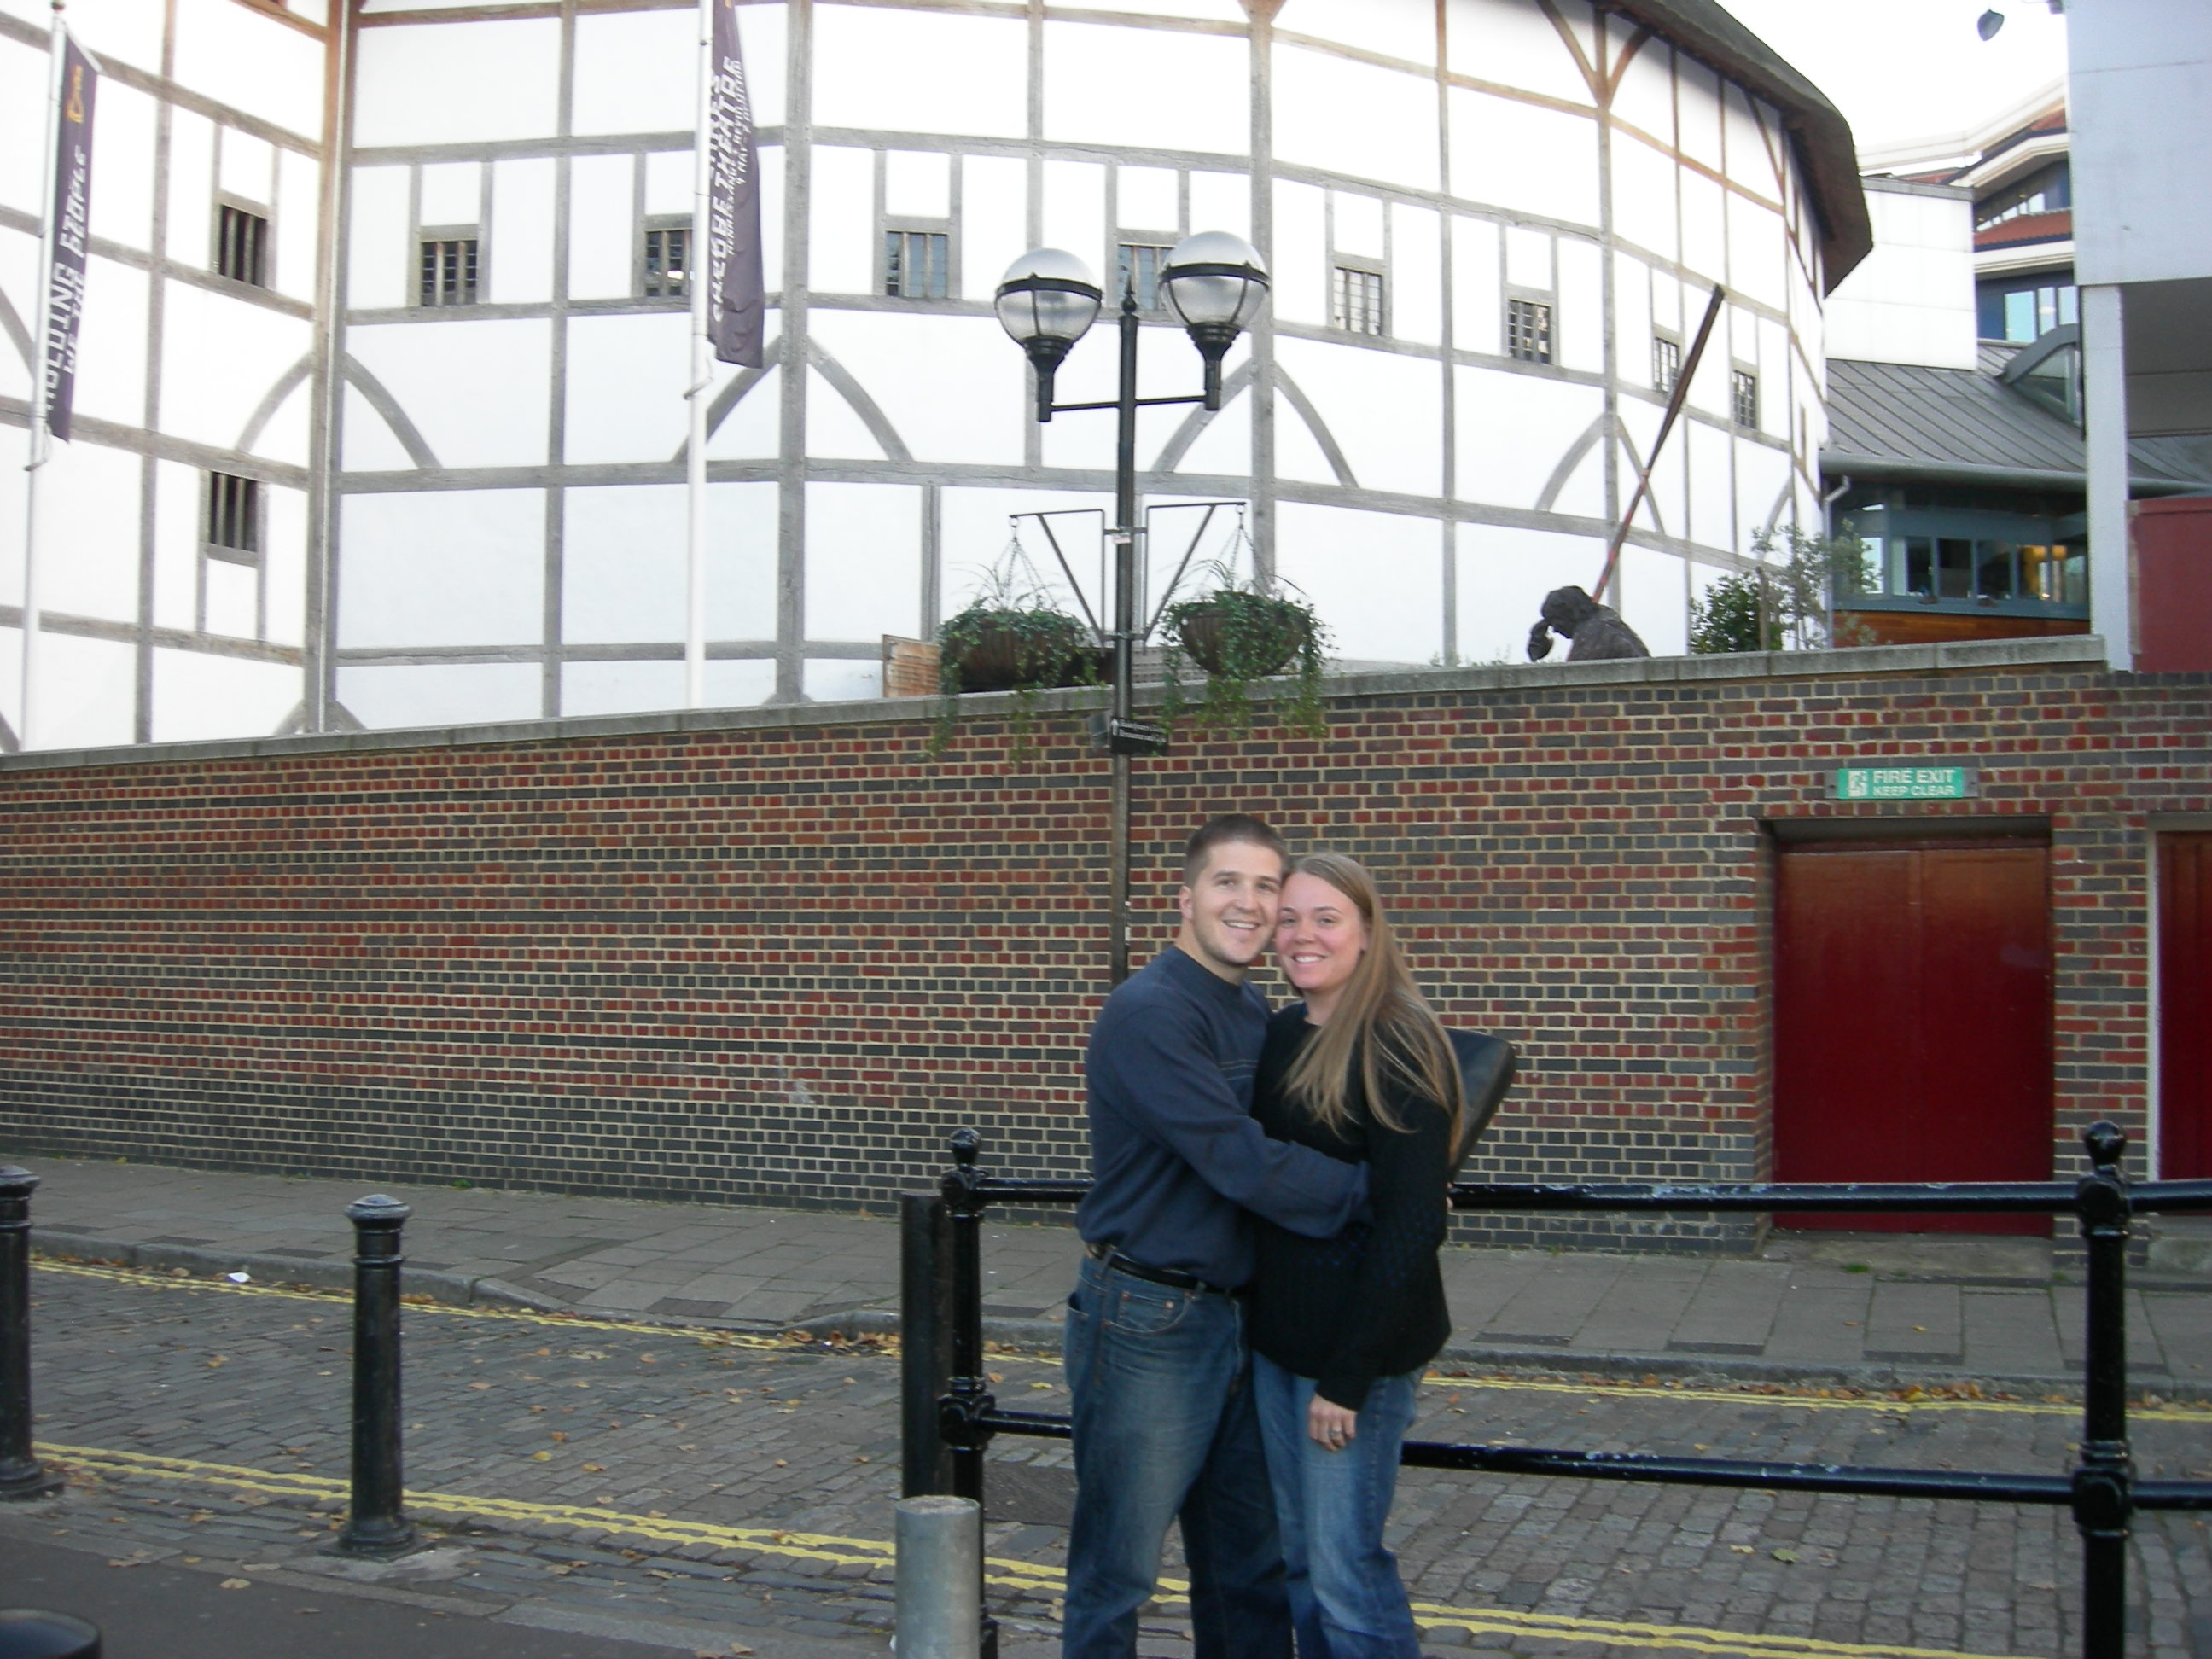 us in front of the Globe Theater in London